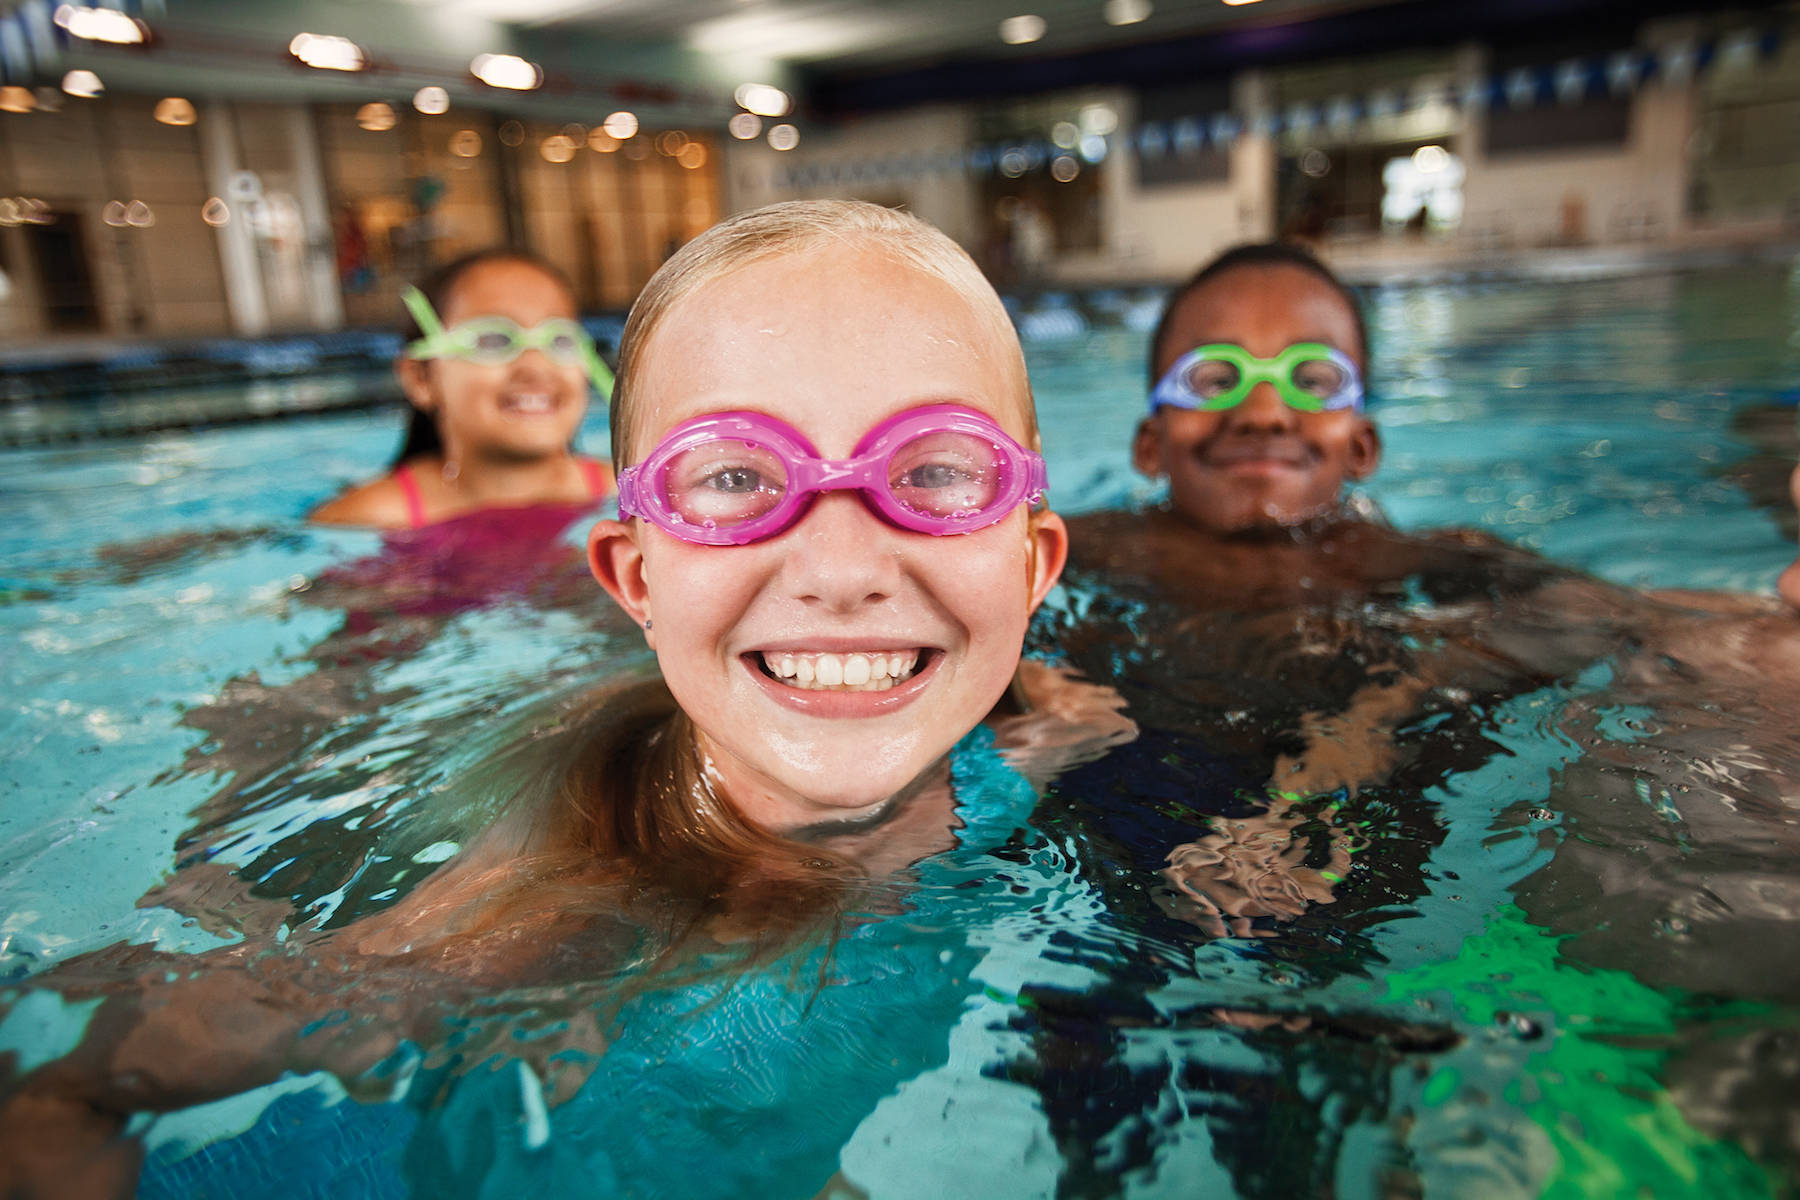 Sussex County Ymca Upgrades Swim Lessons For Improved Skill Building Newton Nj News Tapinto